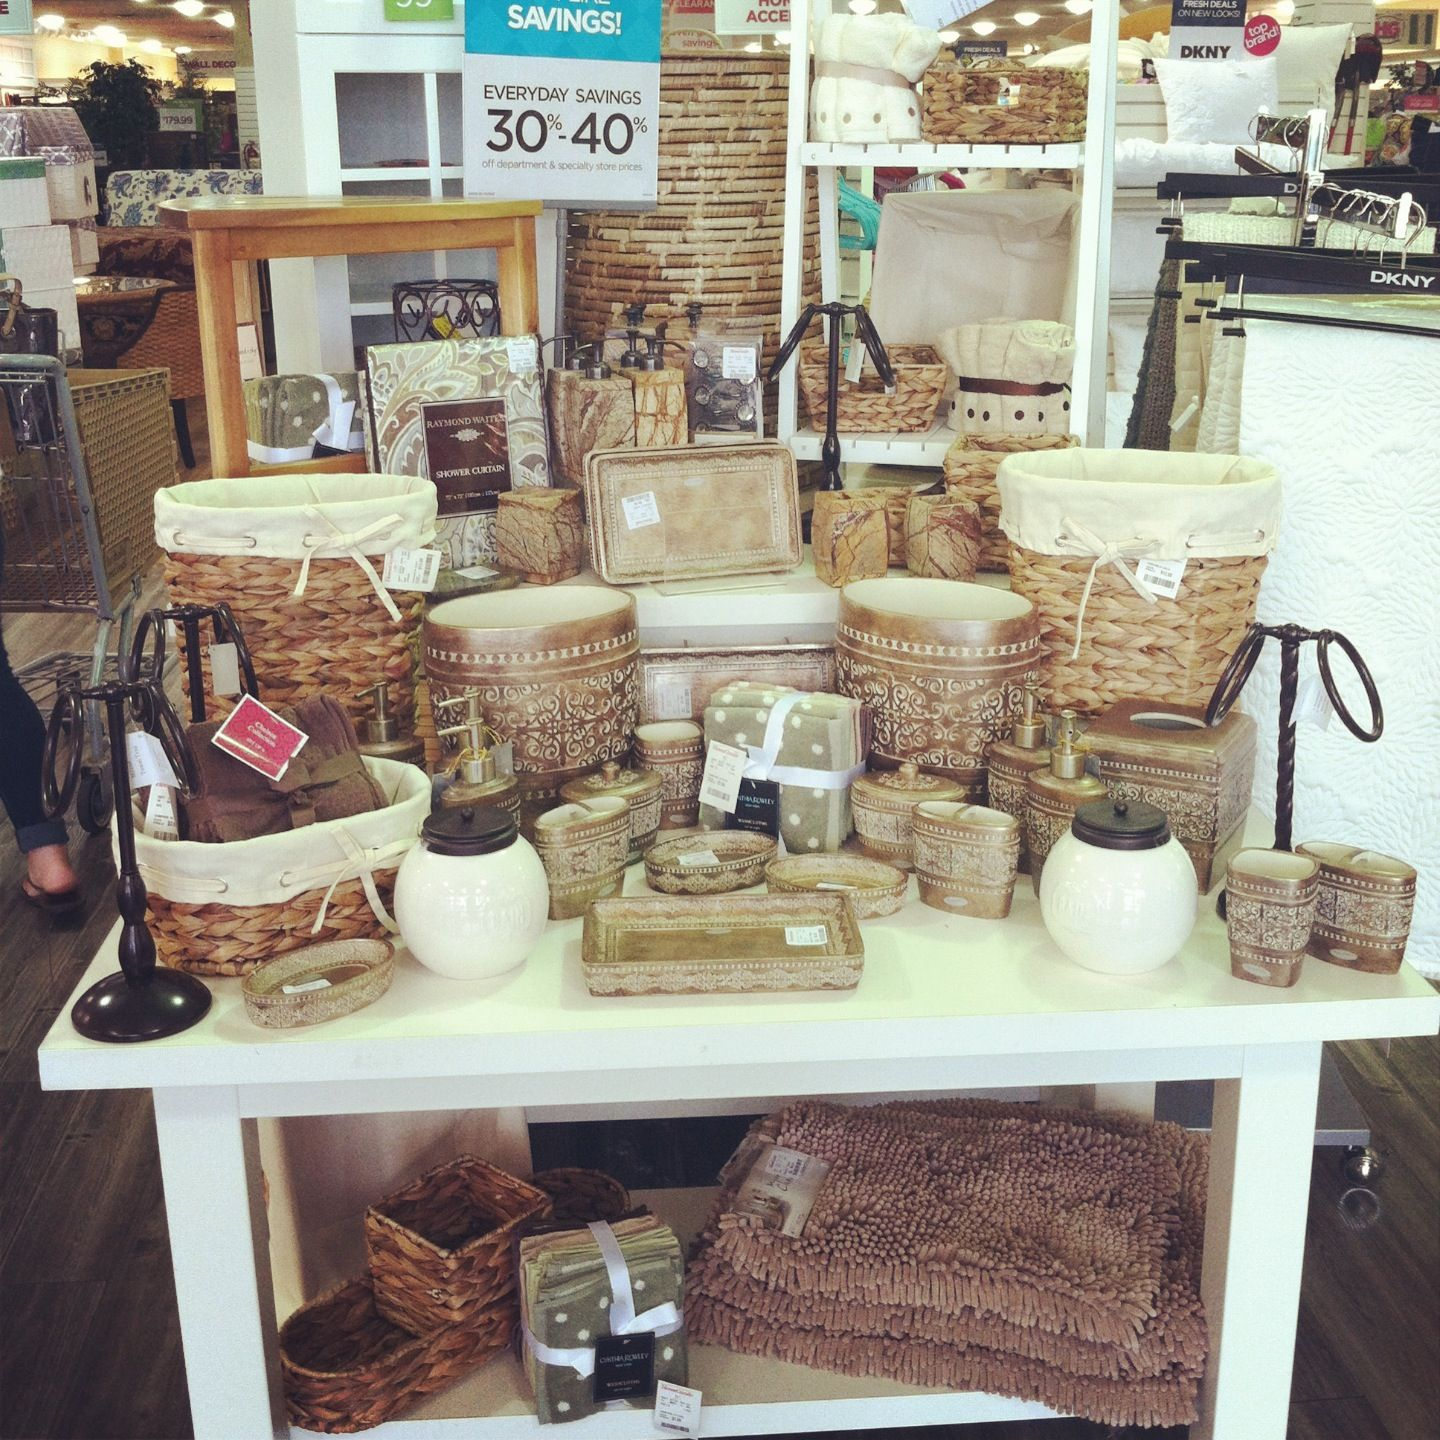 Household Goods Store: HomeGoods: Natural Bath Feature